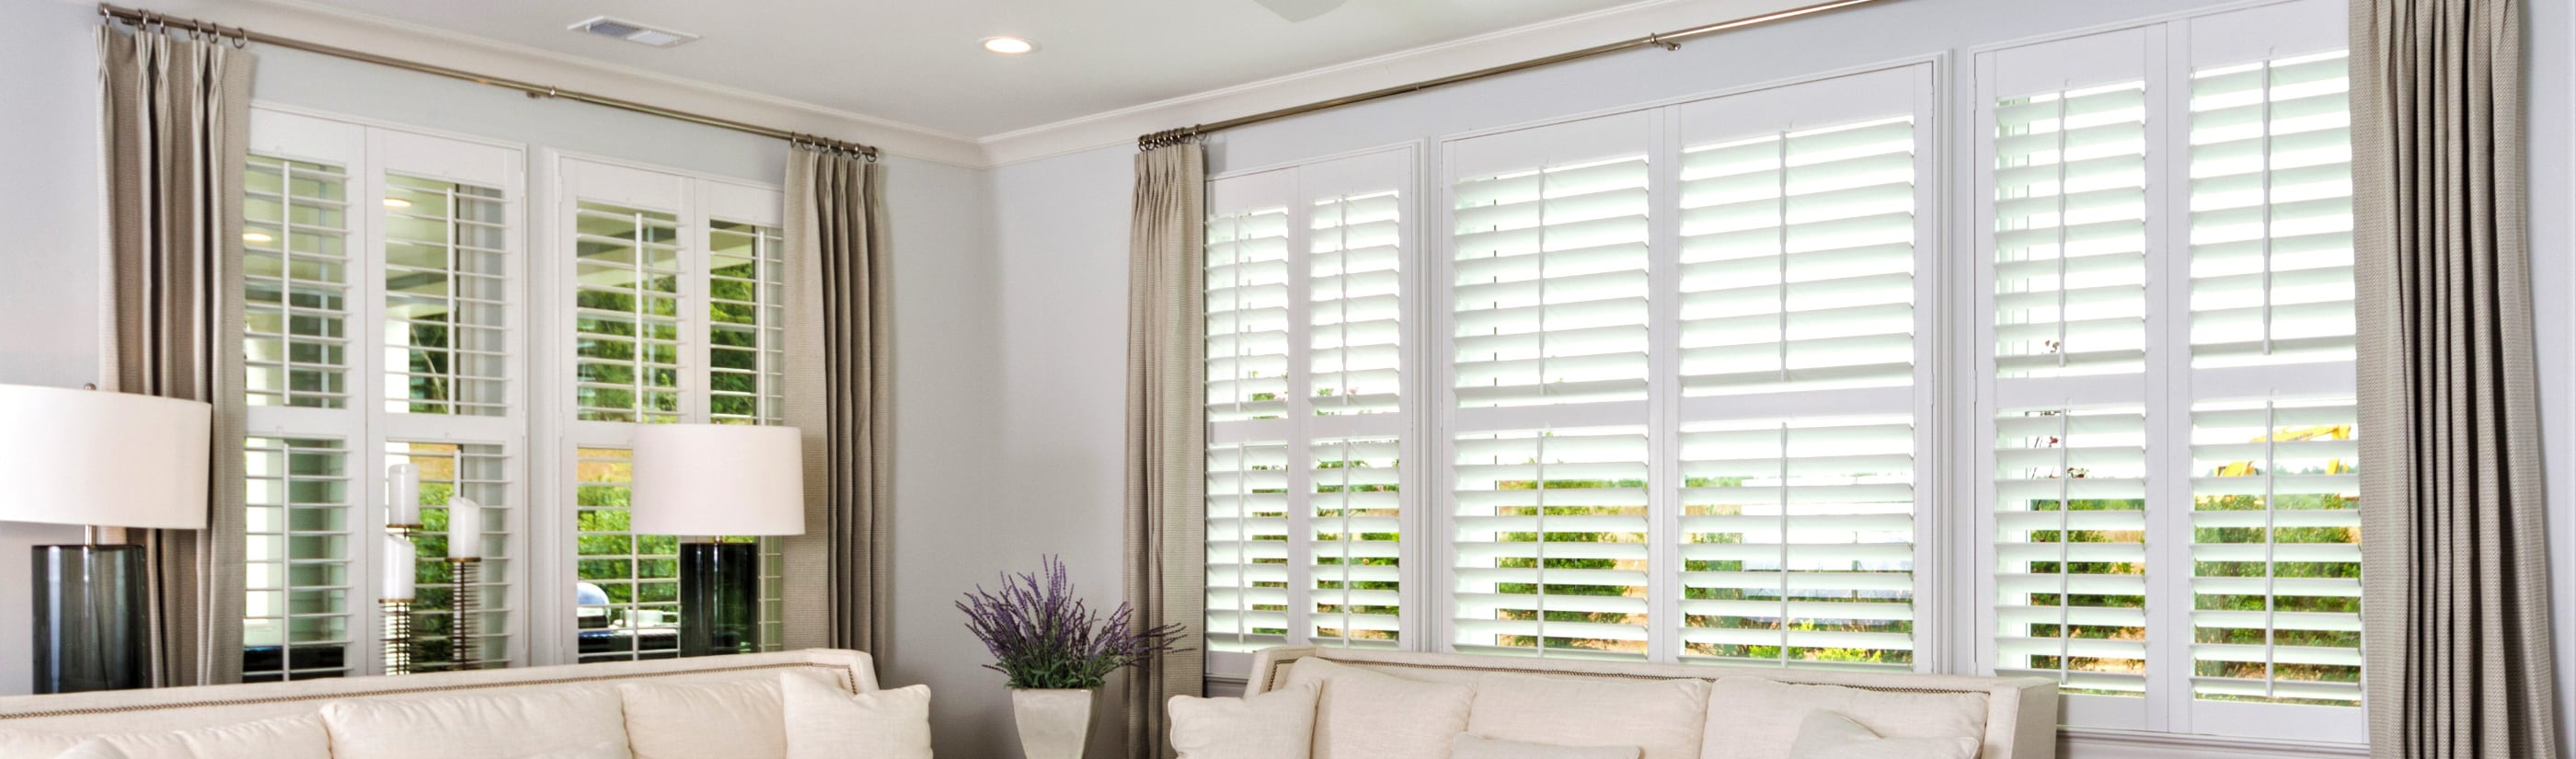 Polywood Shutters Paints In New Brunswick